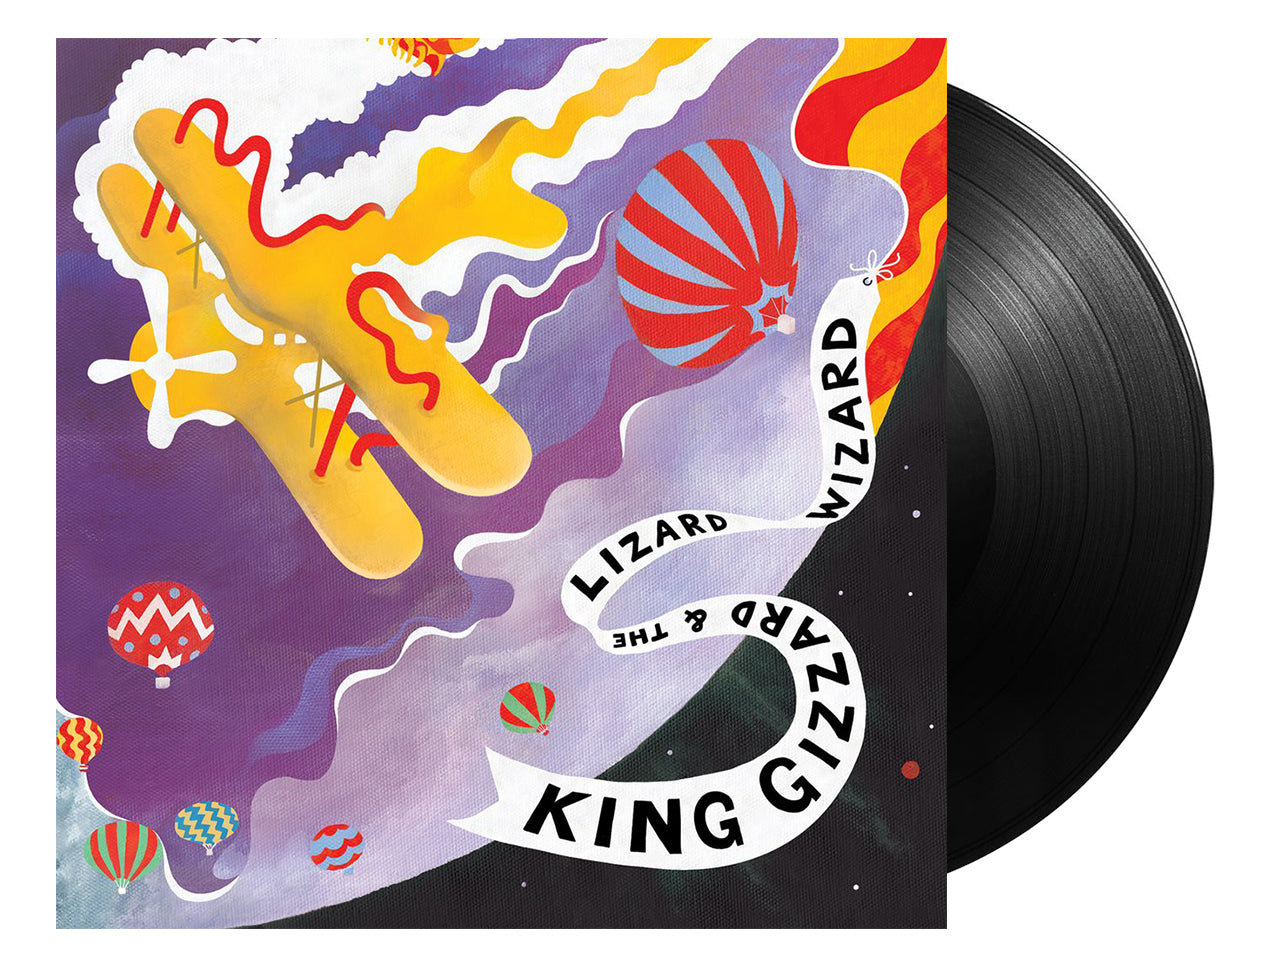 King Gizzard & The Lizard Wizard - Quarters (Castle Face black wax Edition)